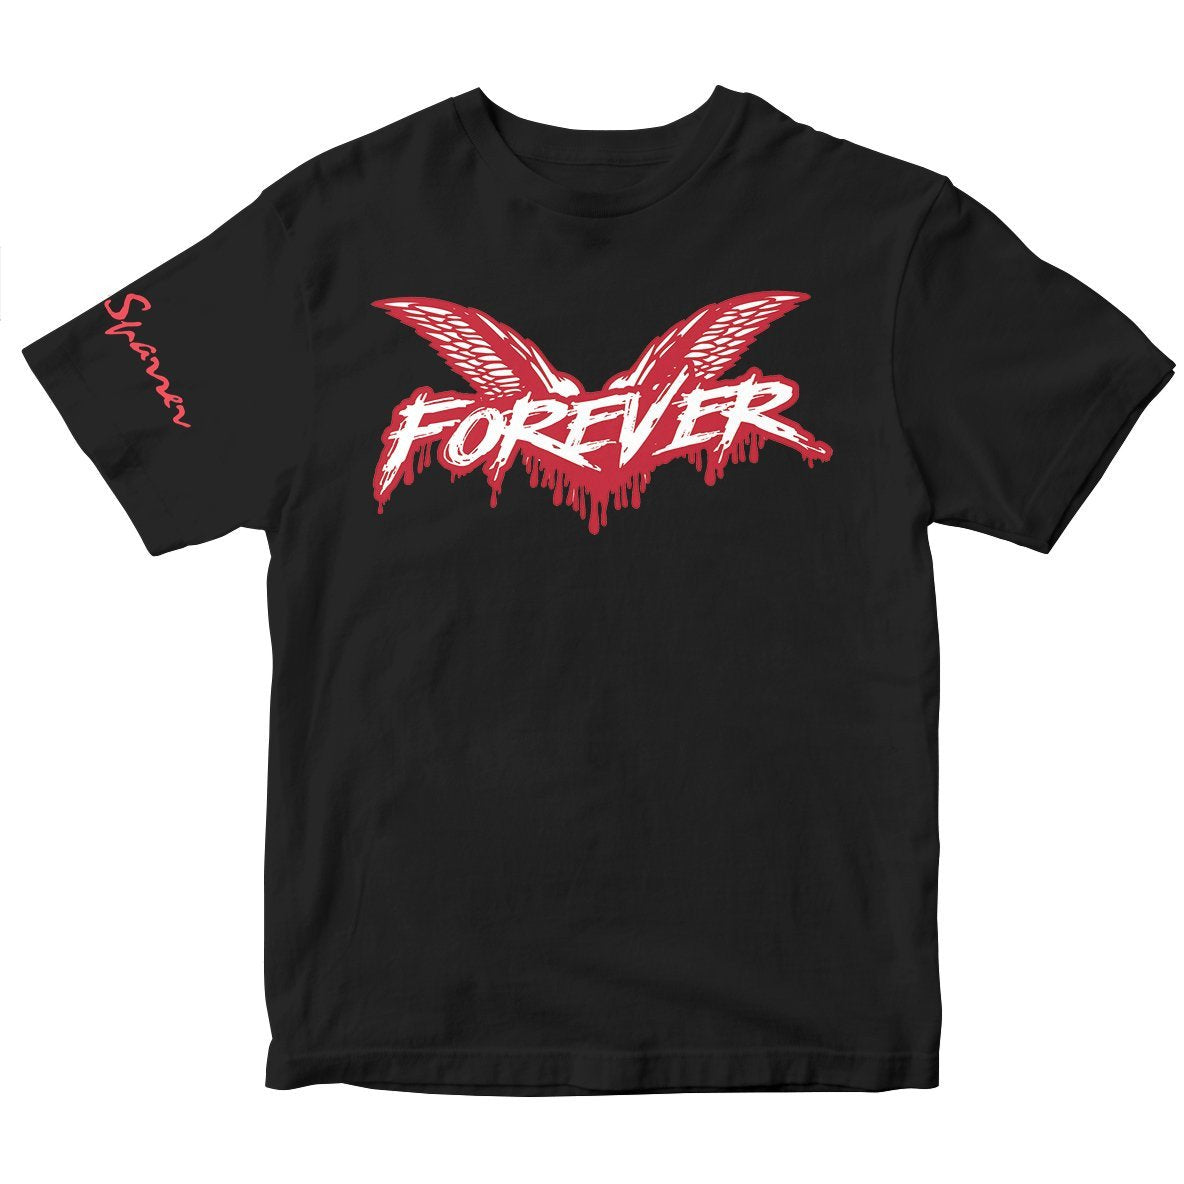 Cock Sparrer - Forever - Black - T-Shirt - Youth